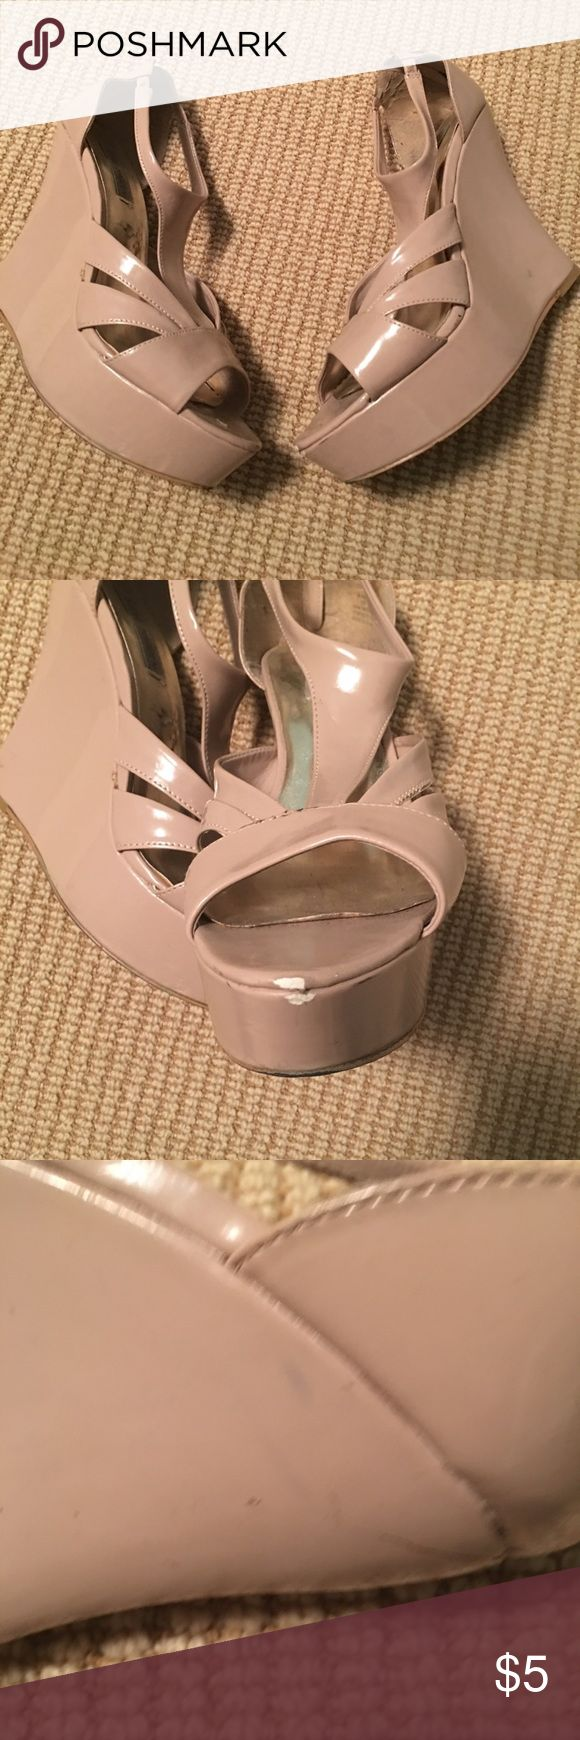 Steve Madden platform sandals Patent man made material.  With wear but still fun to wear.  Please review pictures.  From smoke and pet free home.  Fast shipper. Steve Madden Shoes Platforms